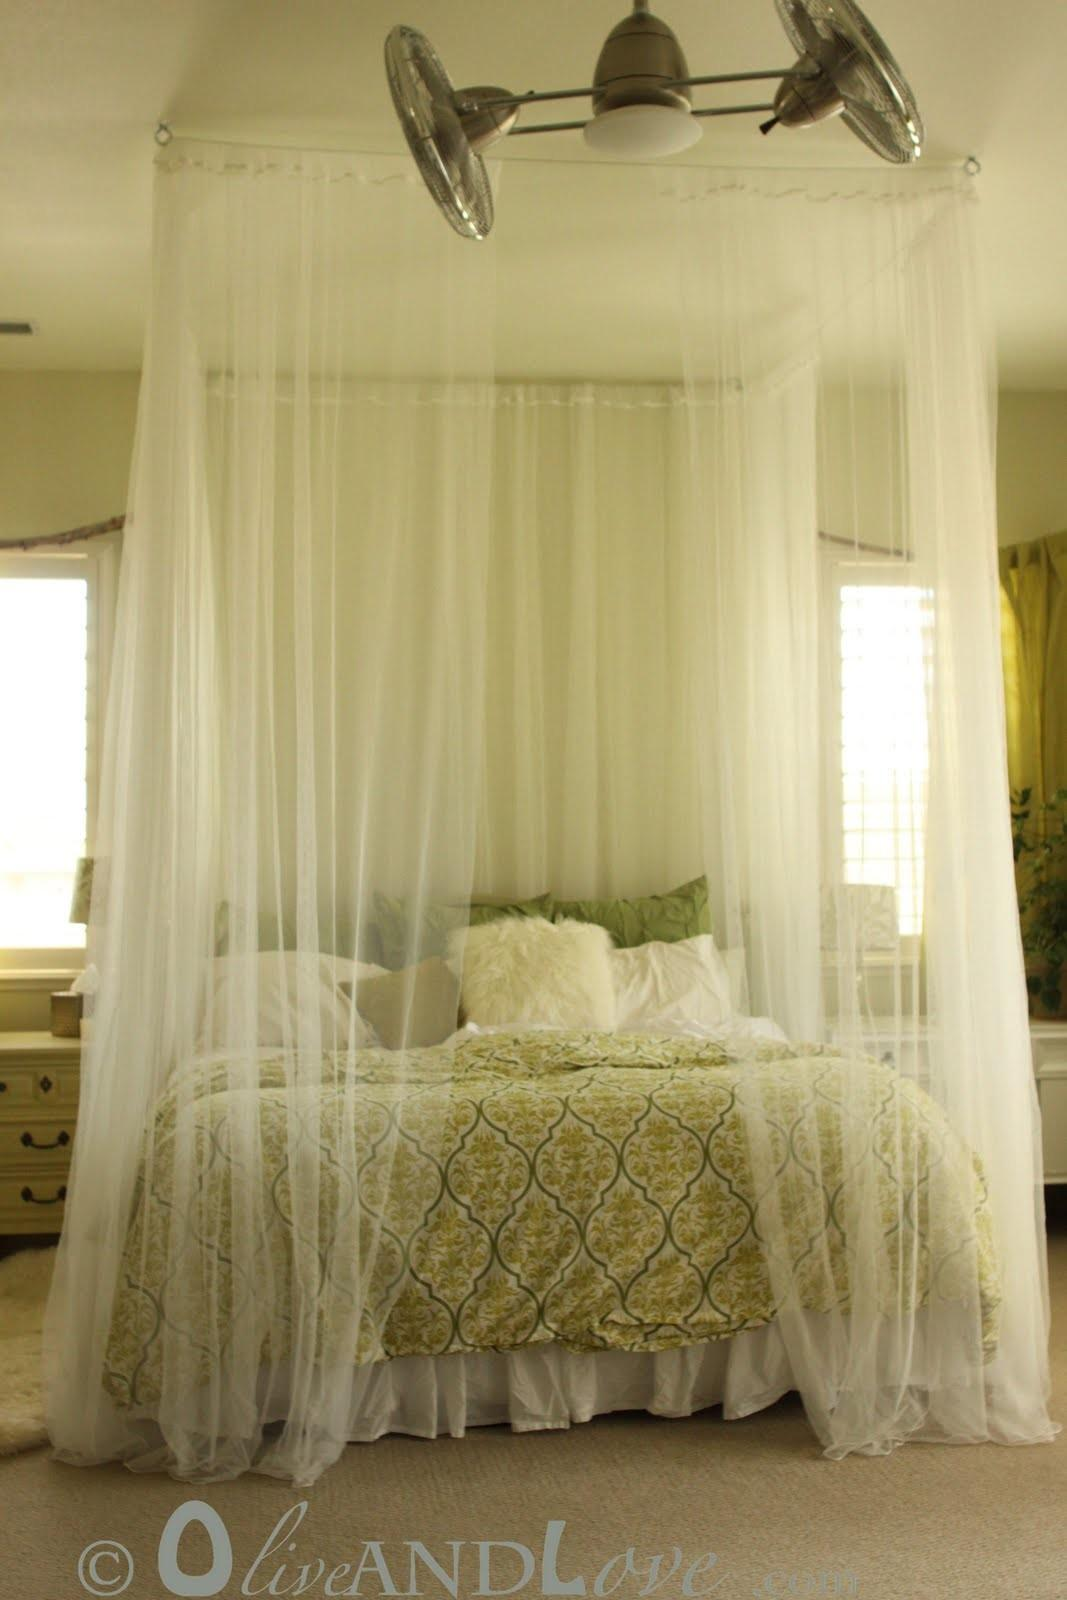 Ceiling Mounted Bed Canopy Oliveandlove